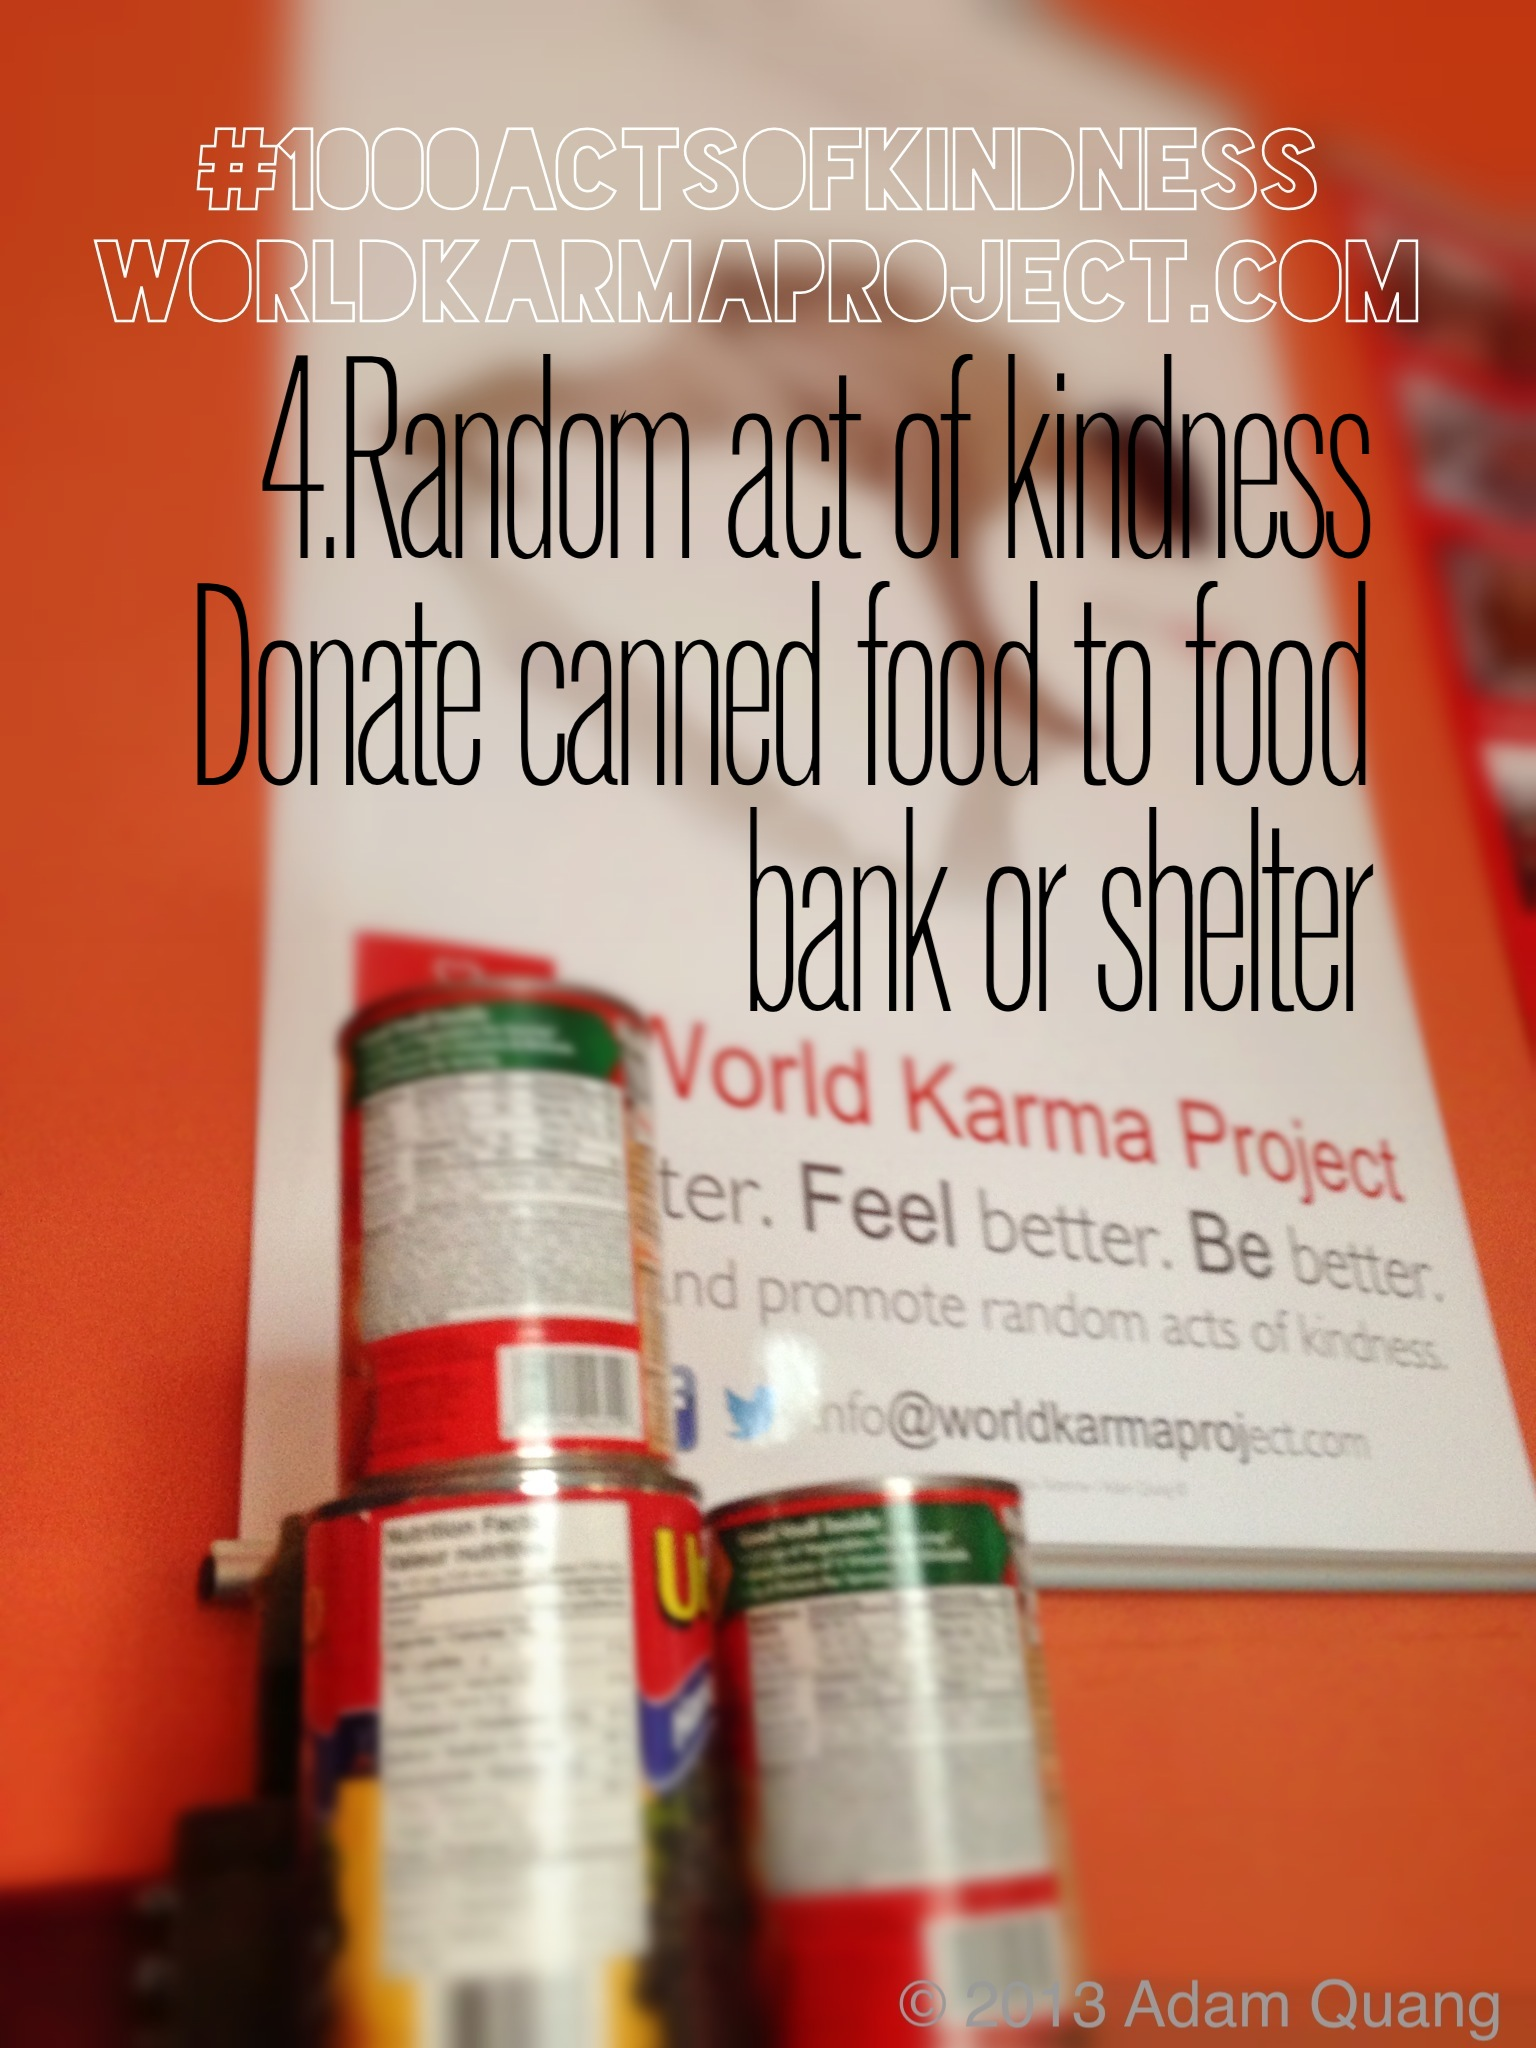 4 Donate canned food to food bank or shelter #1000ActsofKindness